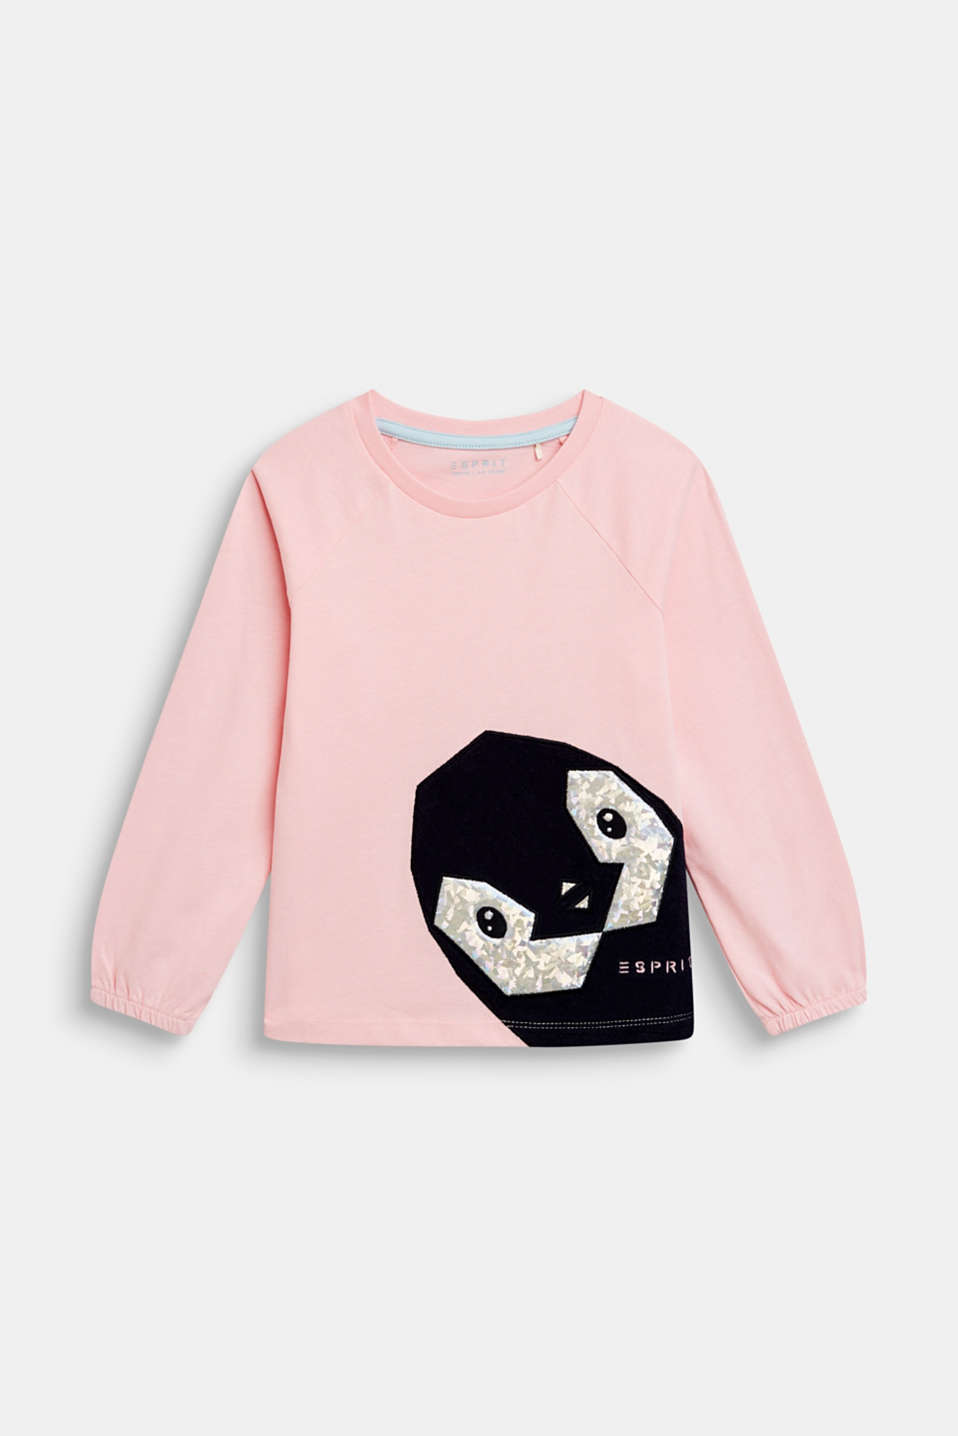 Esprit - Long sleeve top with penguin appliqués